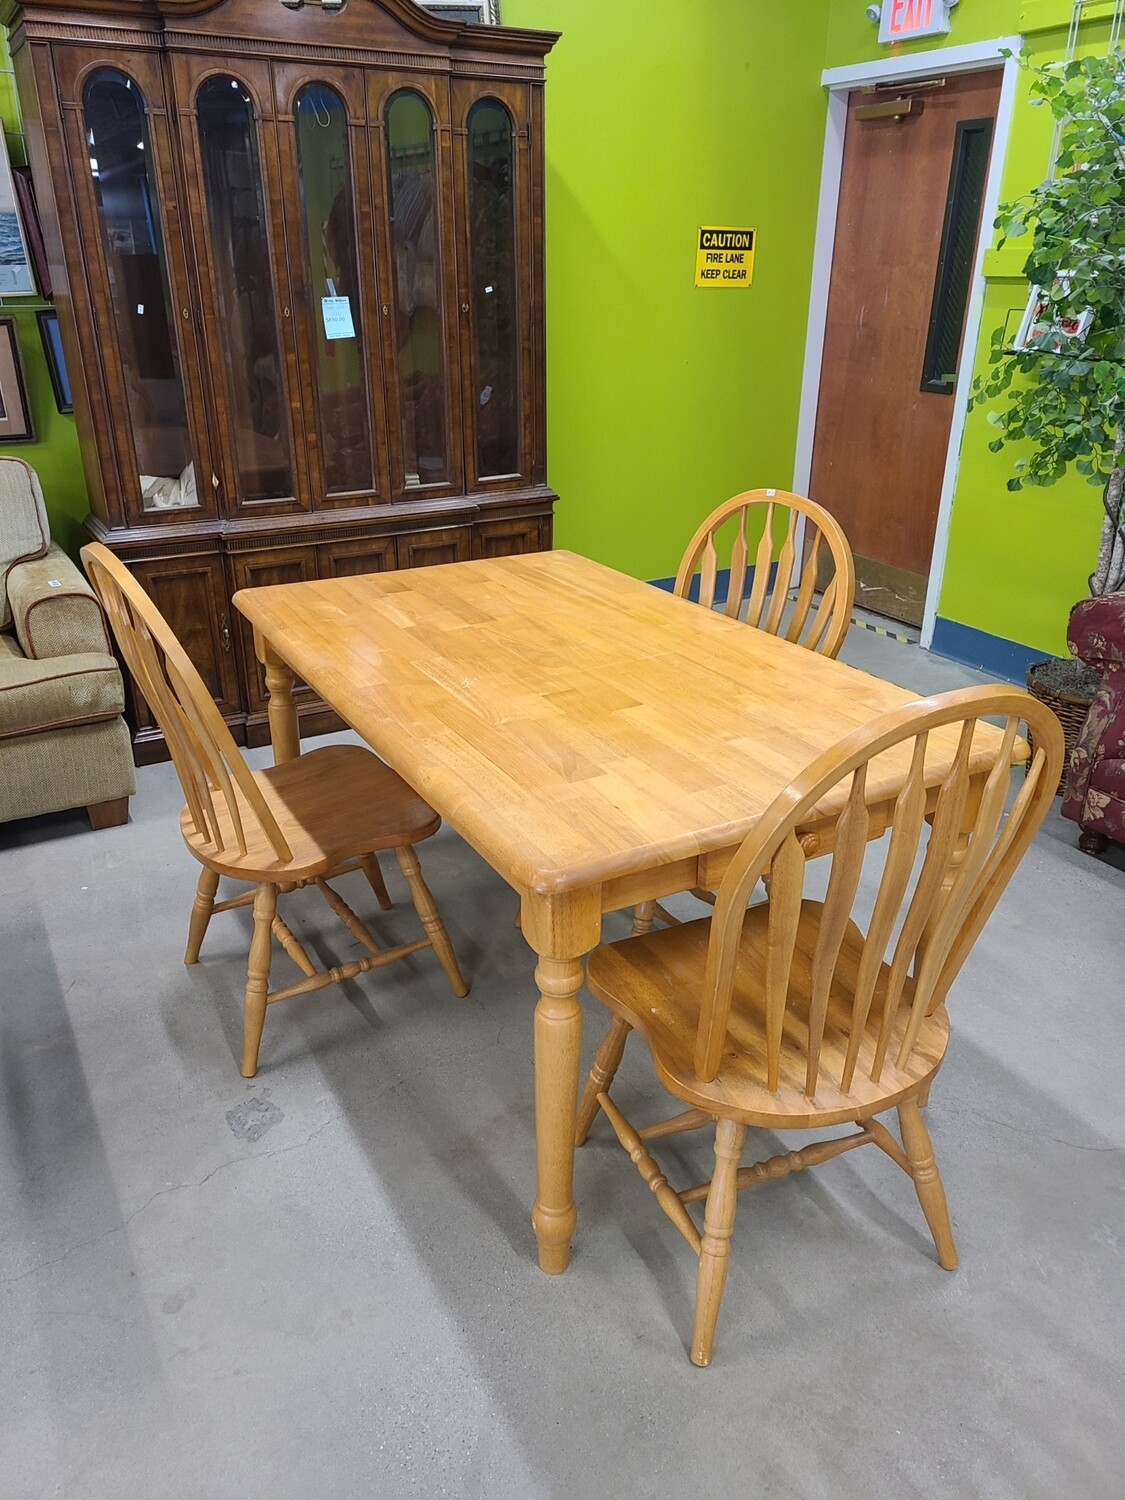 Dining Table with Chairs (3)